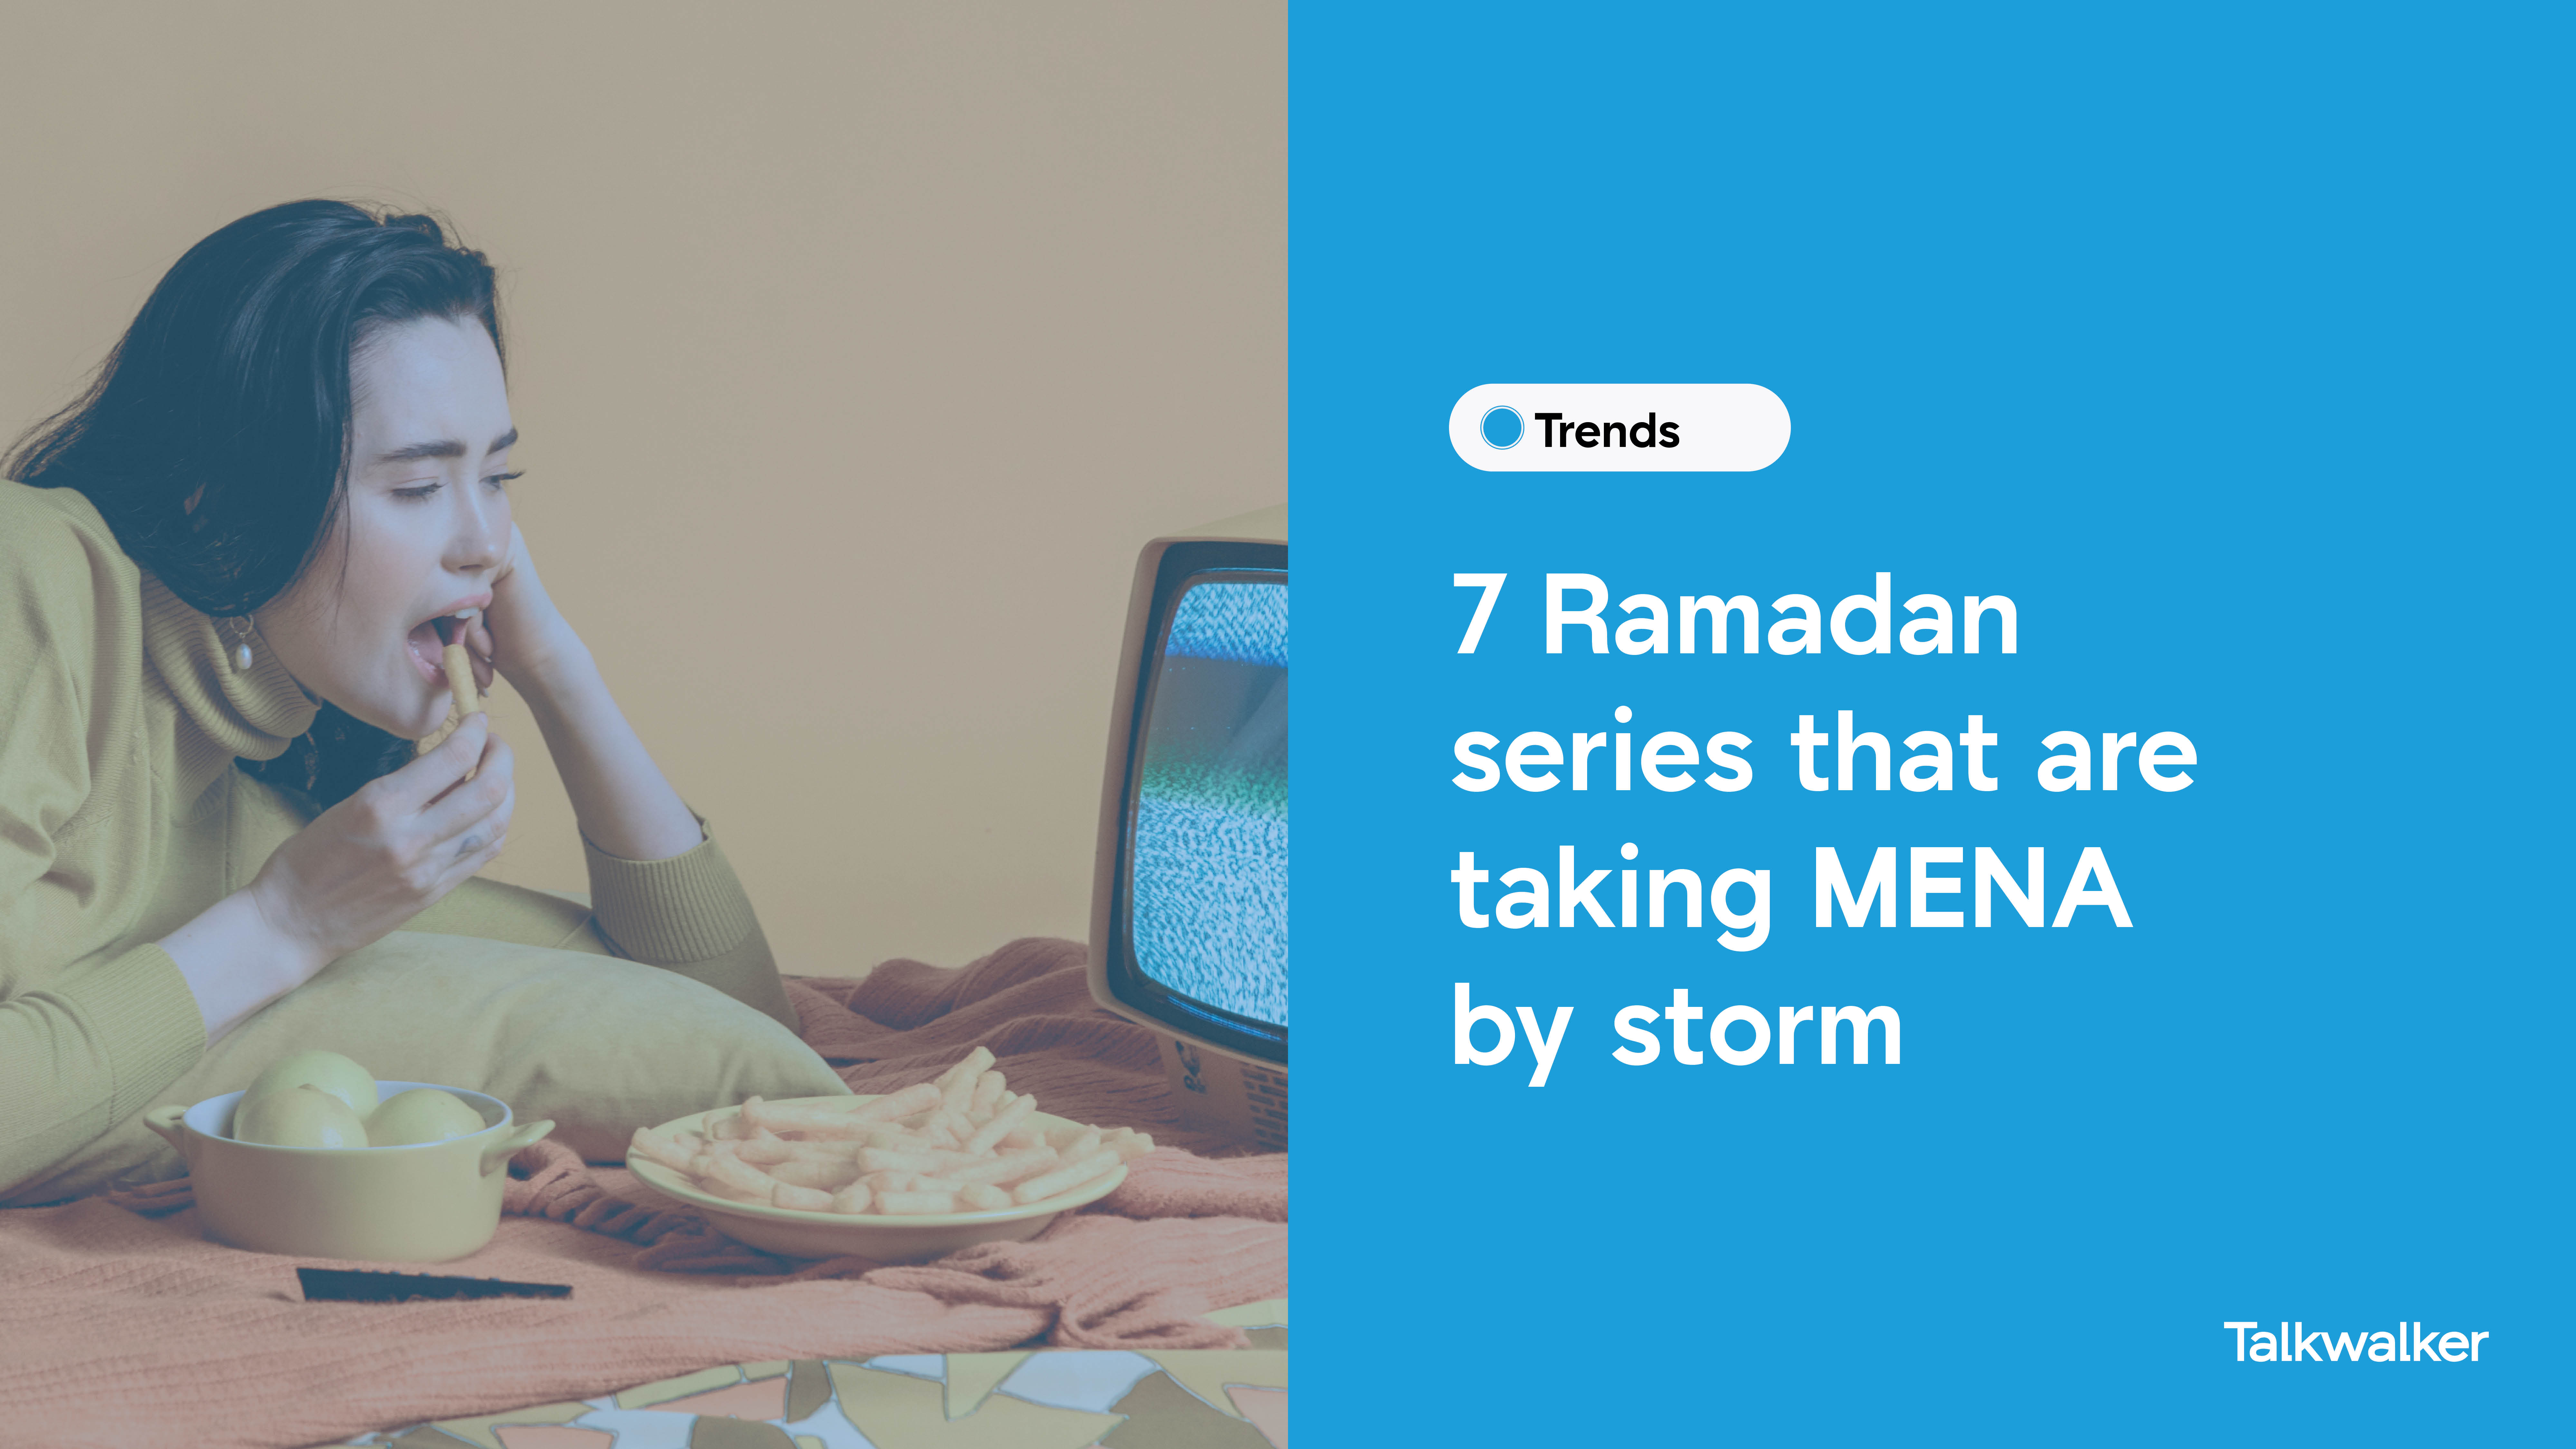 Ramadan TV series that audiences are talking most about on social media